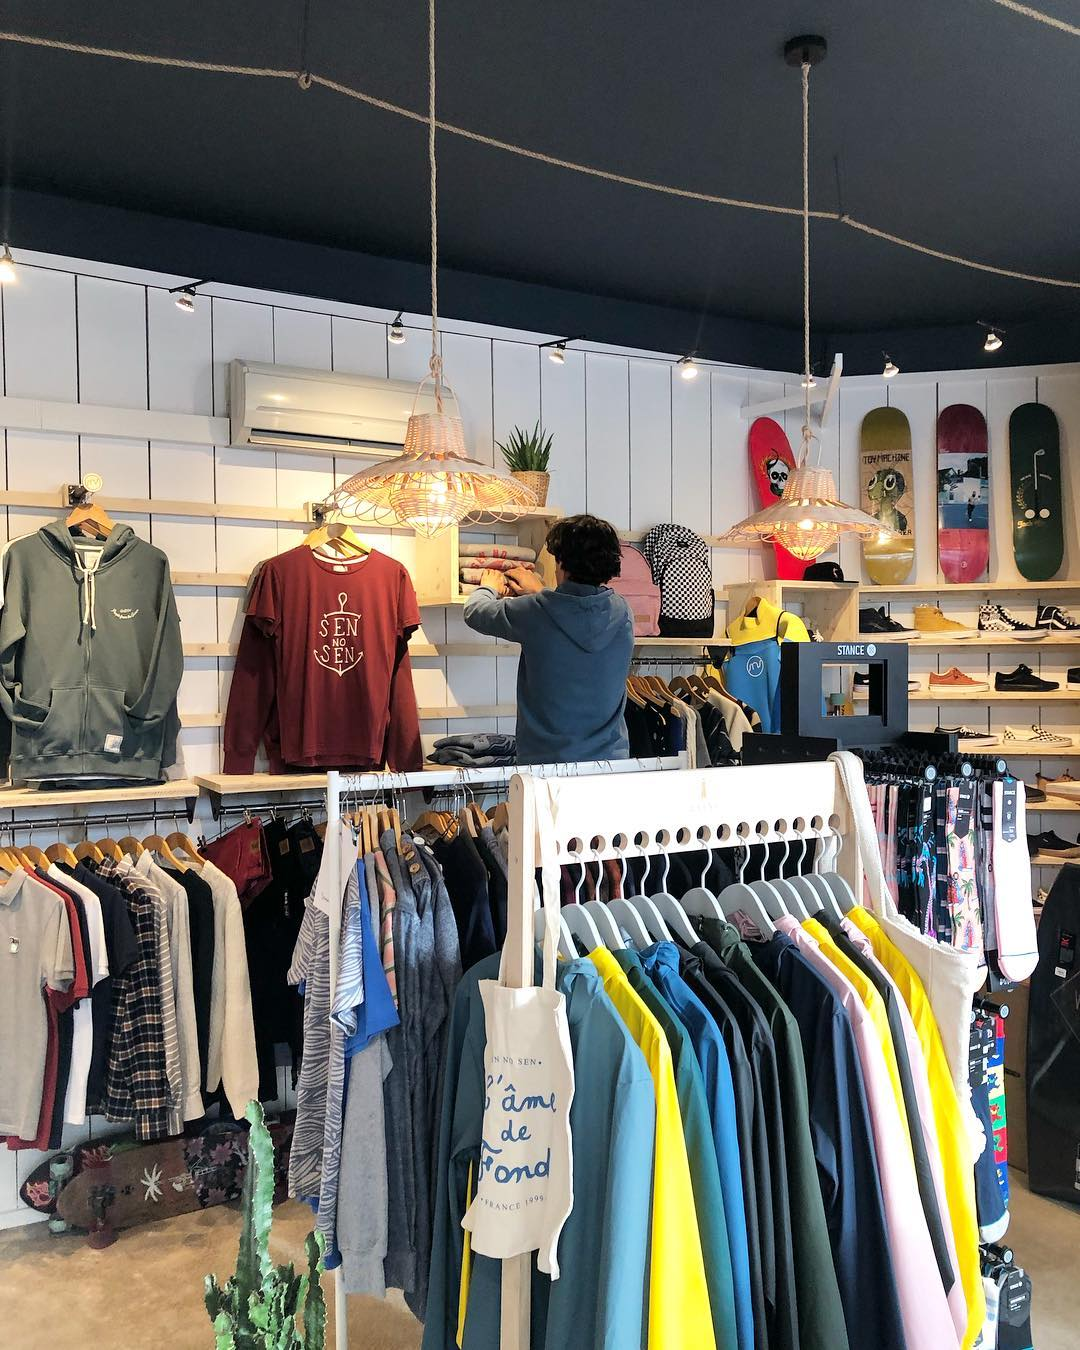 Sen No Sen boutique surf shop Shop Small Saturday